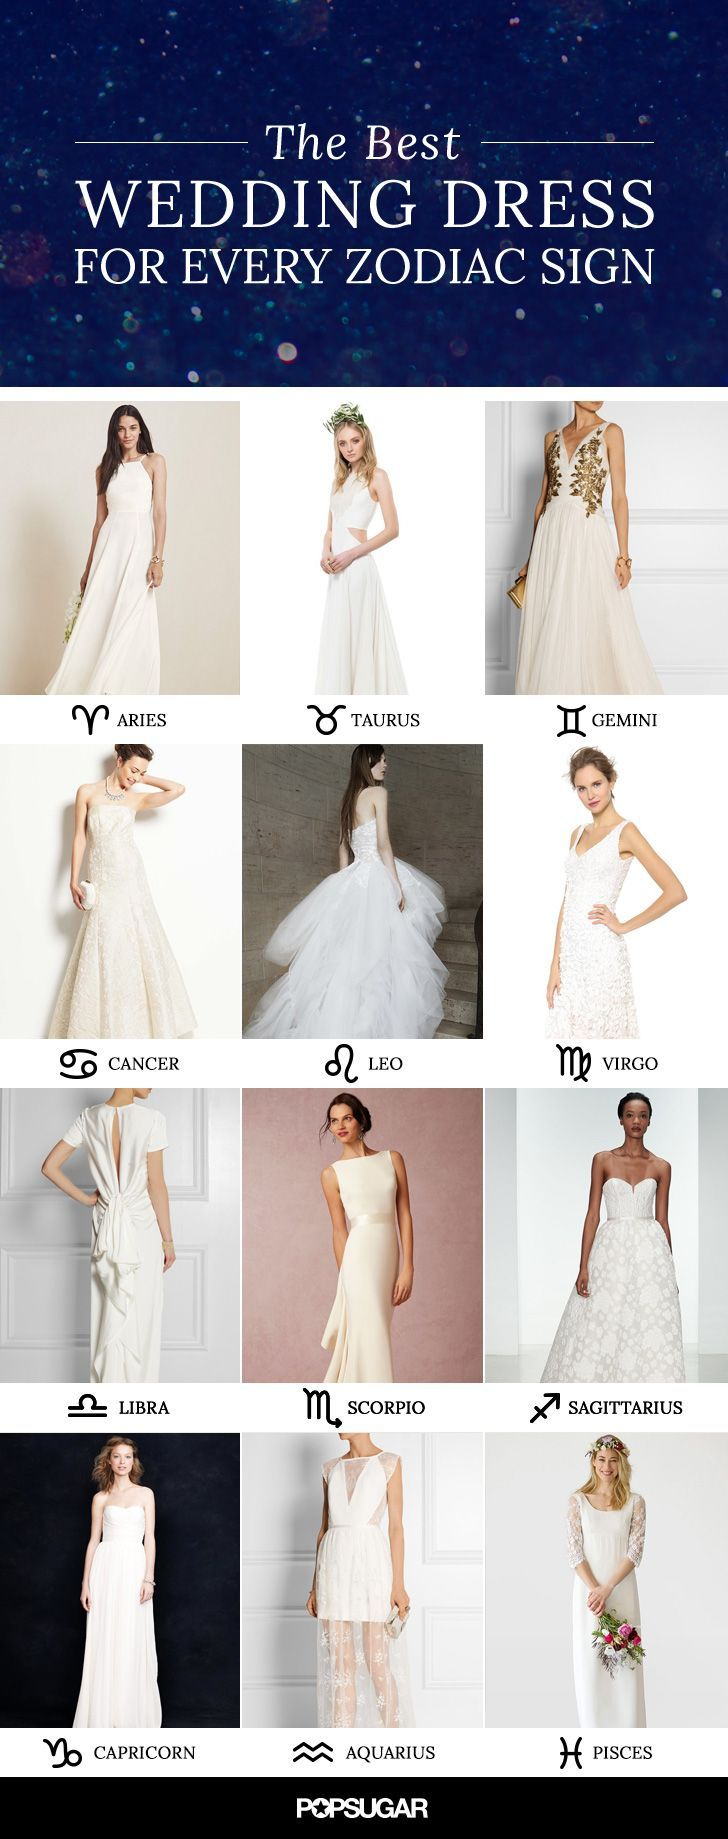 The best wedding dress for your zodiac sign: including princess, lace, satin, ball gown, mermaid, simple, sexy! Lots of beautiful inspiration.